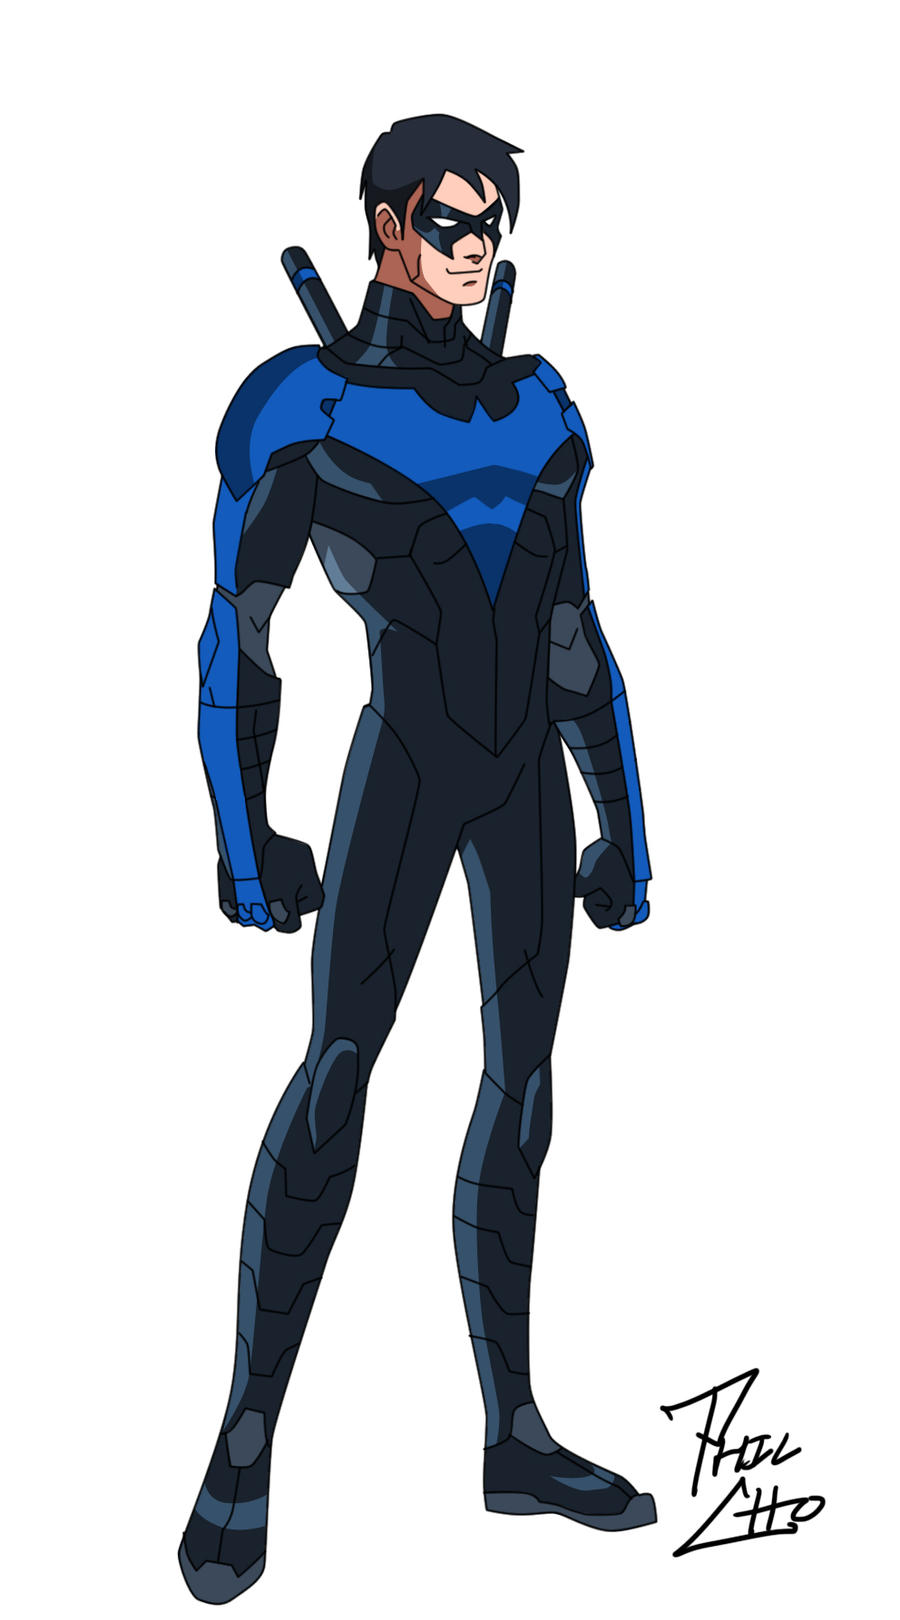 Nightwing: Dick Grayson Blue by phil-cho on DeviantArt